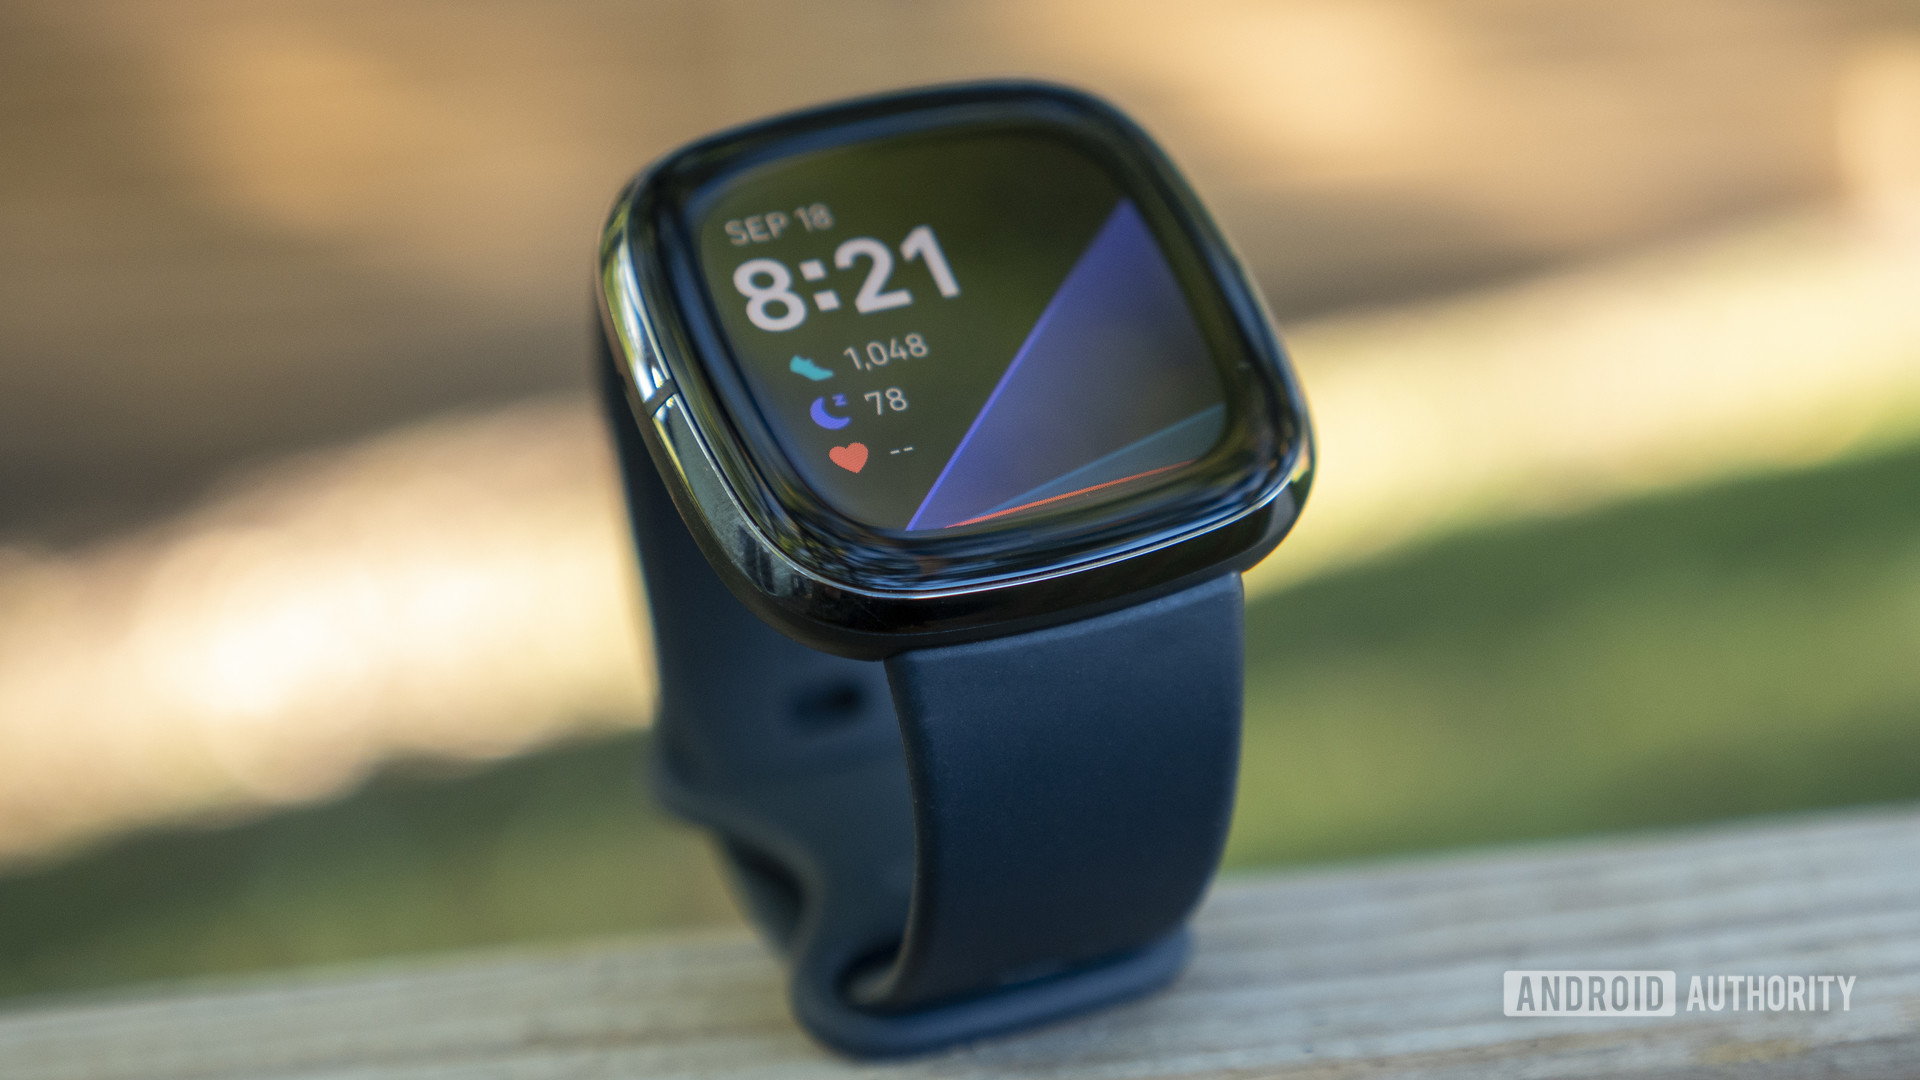 fitbit sense review design display watch face 4